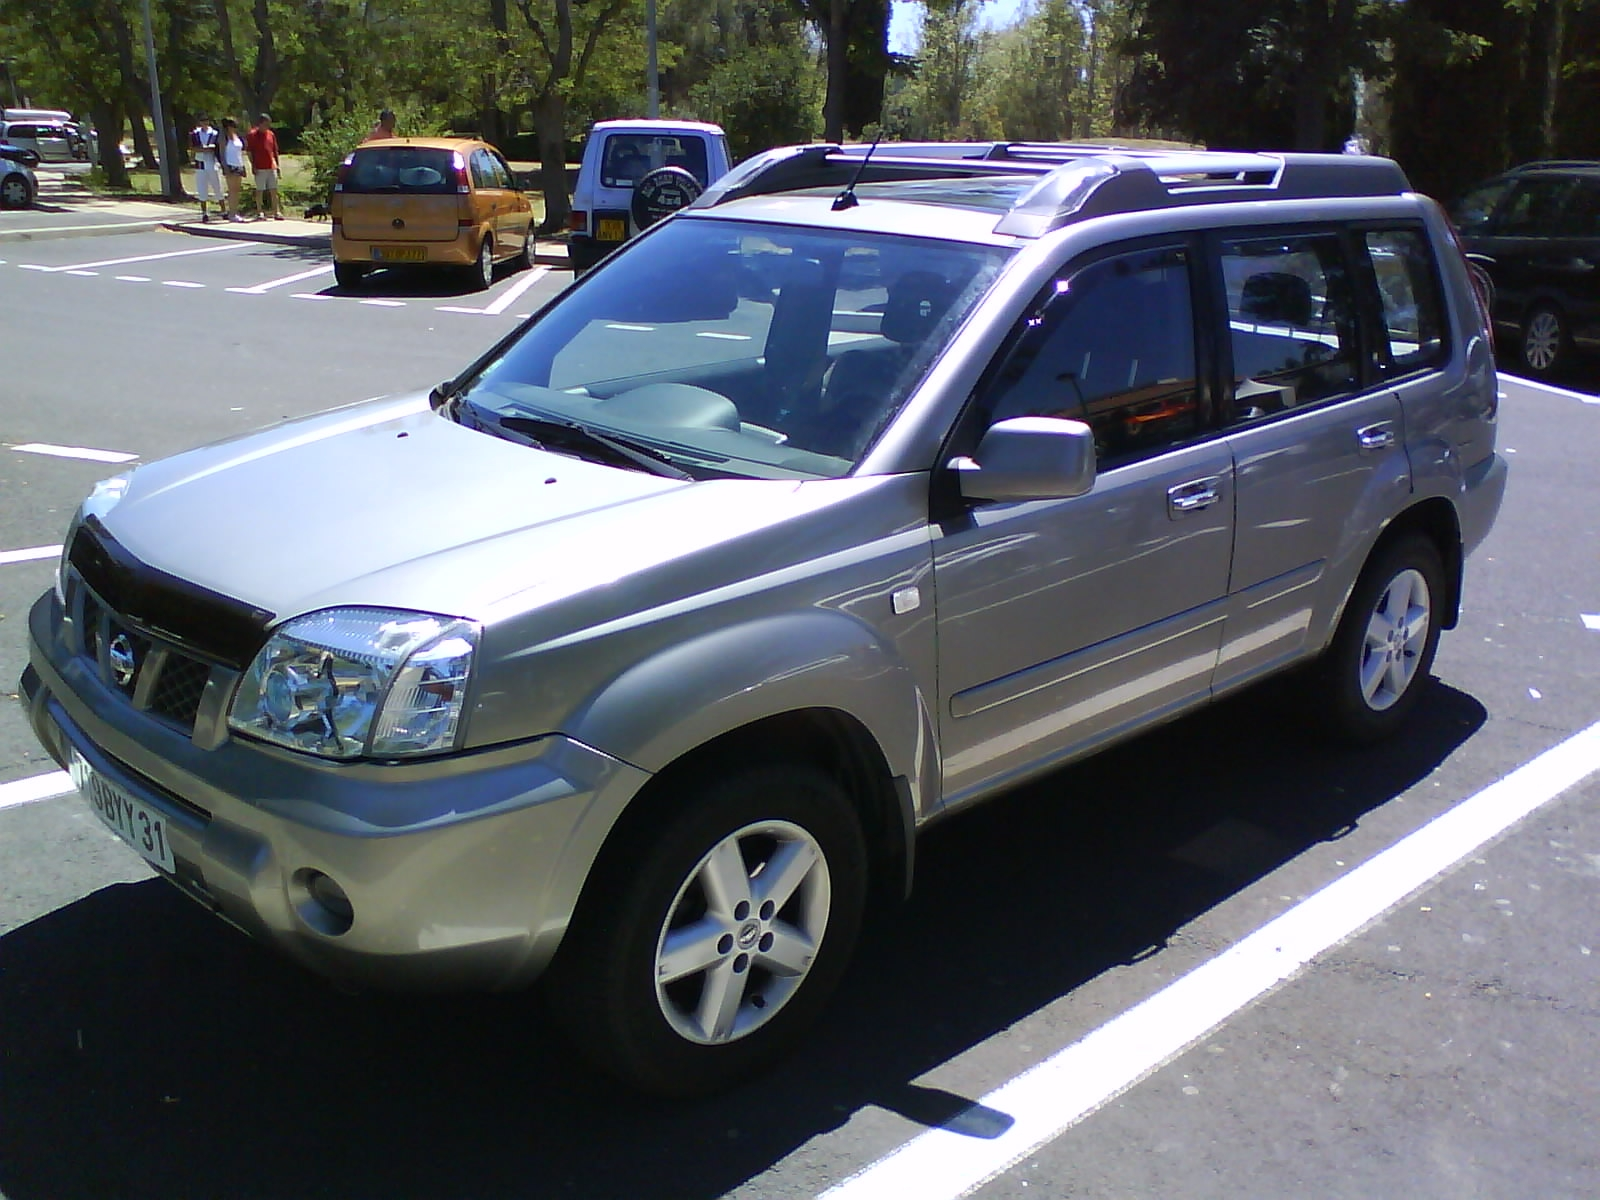 jmfmot 2005 nissan x trail specs photos modification info at cardomain. Black Bedroom Furniture Sets. Home Design Ideas